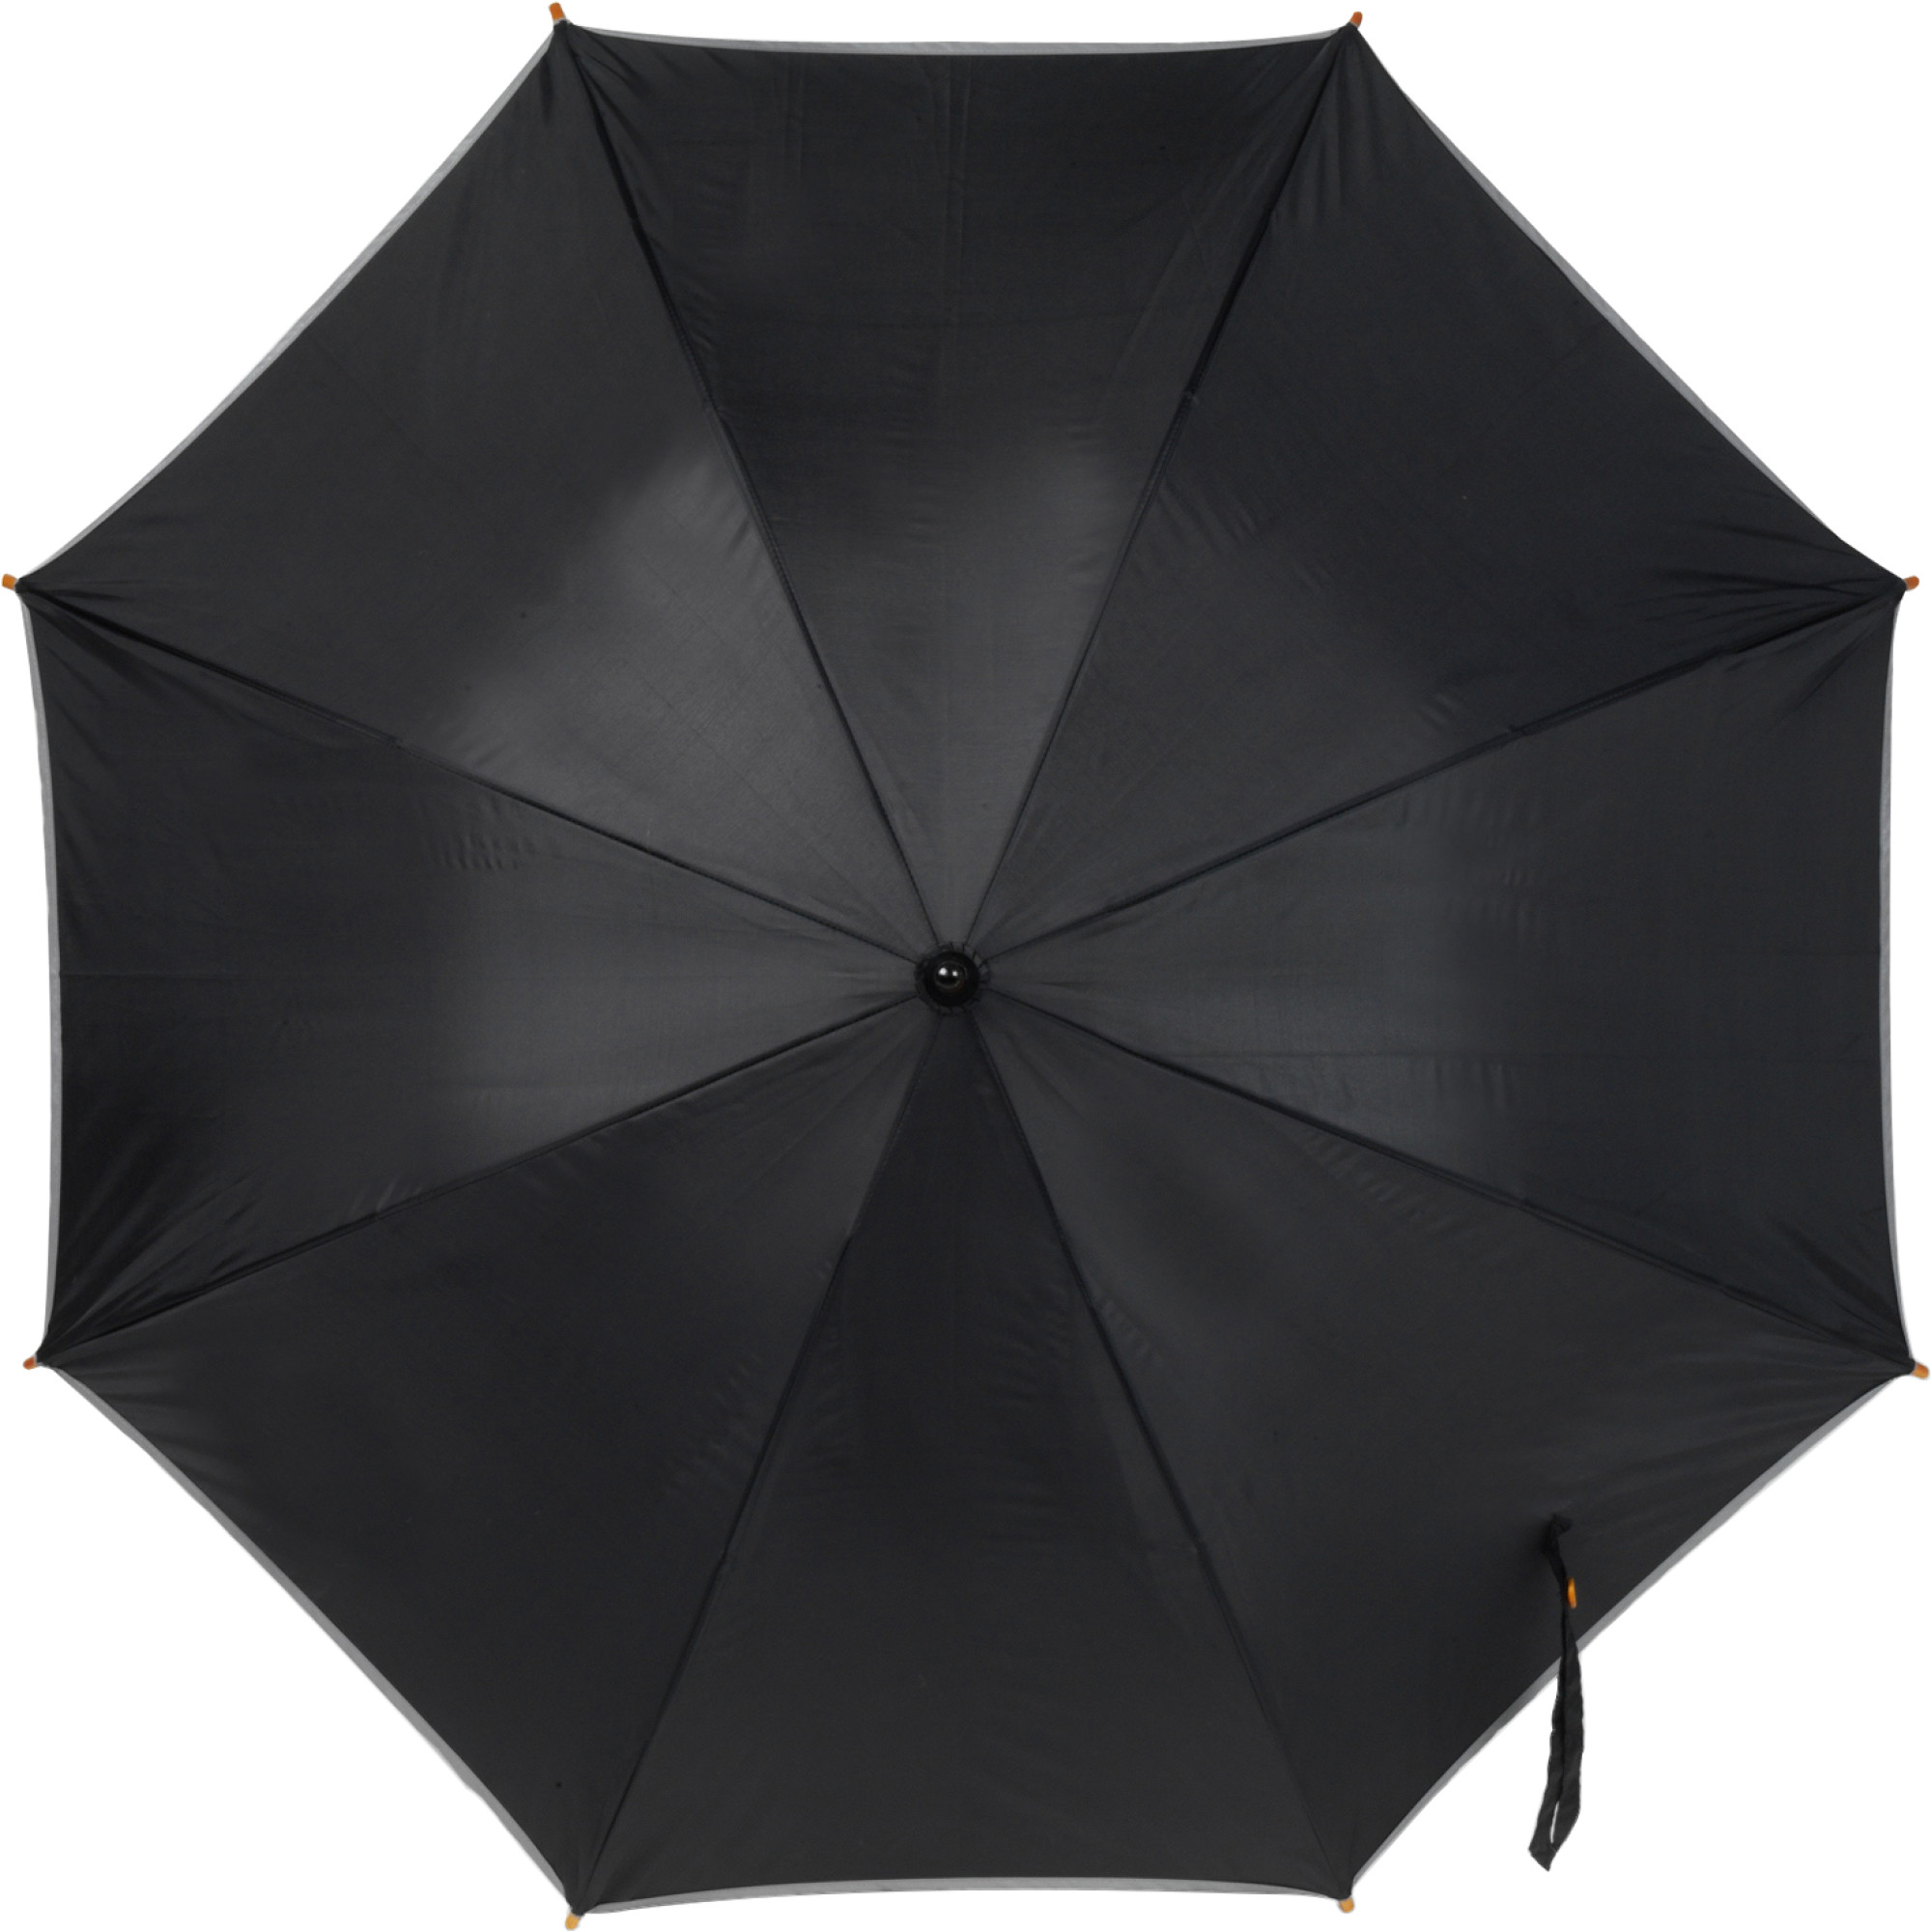 Promotional Umbrella with reflective border